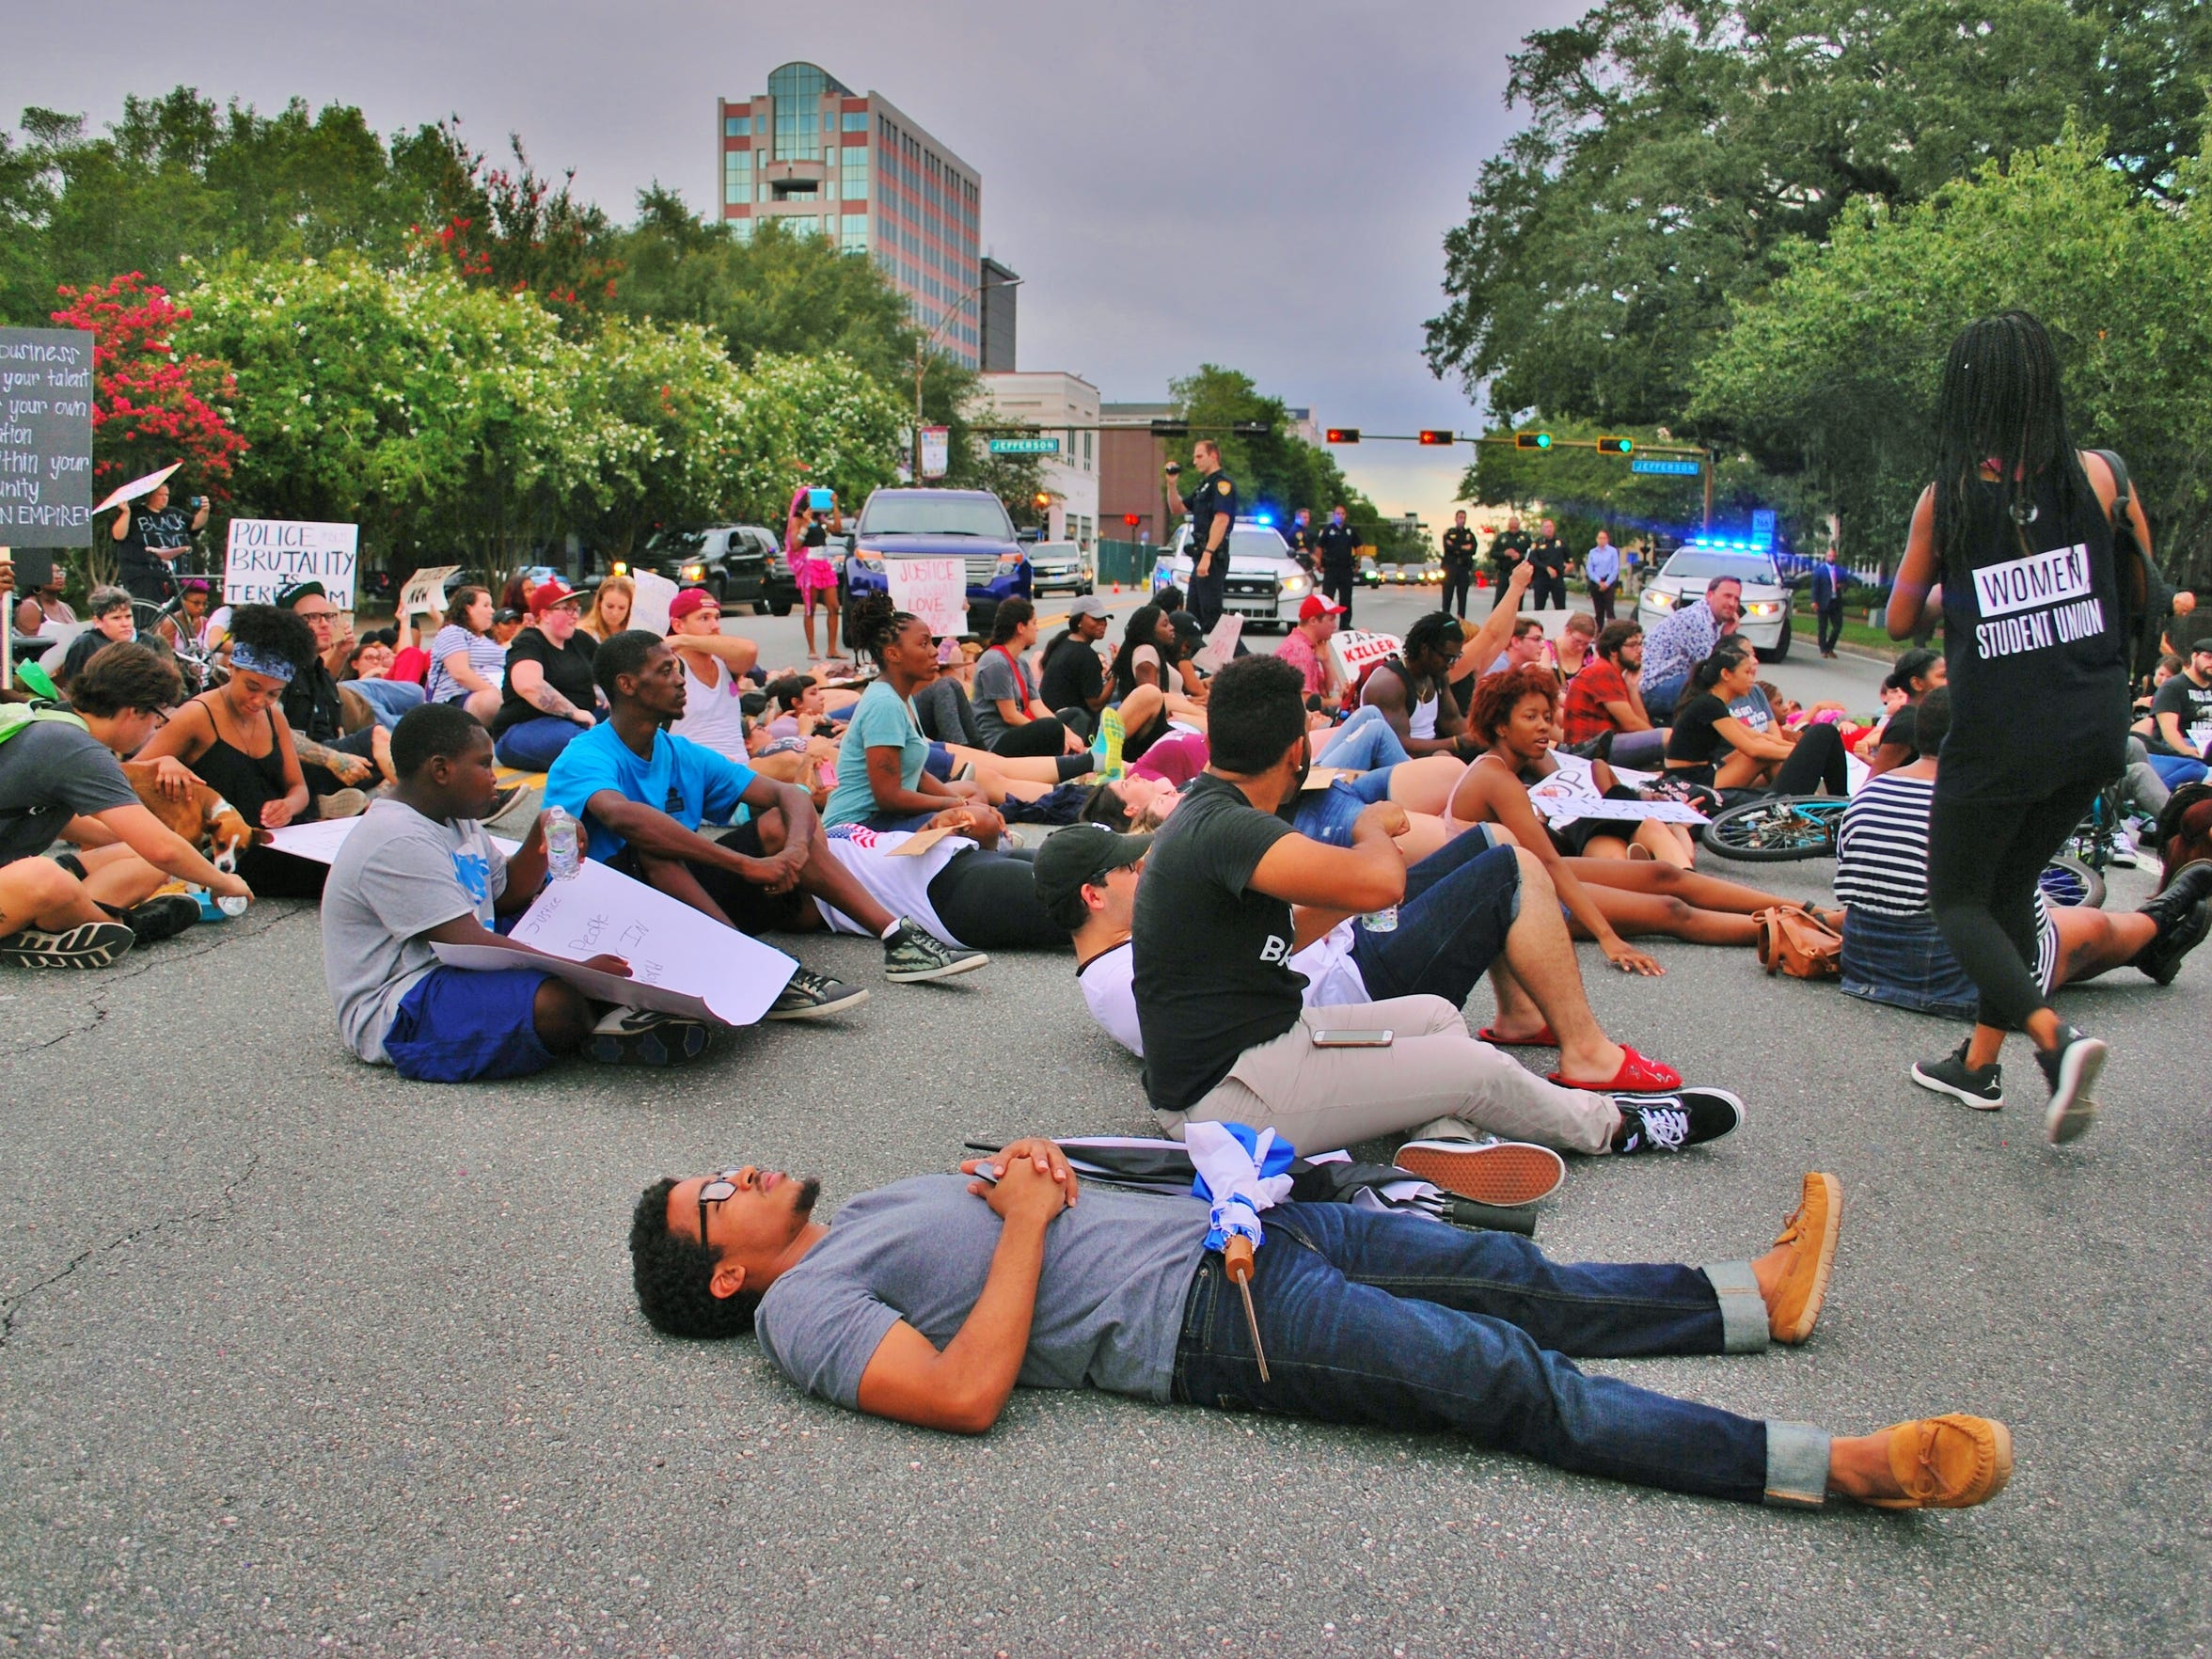 Protestors staged a die-in on Monroe Street in front of the Capitol. Police helped block the road so that protestors could symbolize the lives taken by police violence.